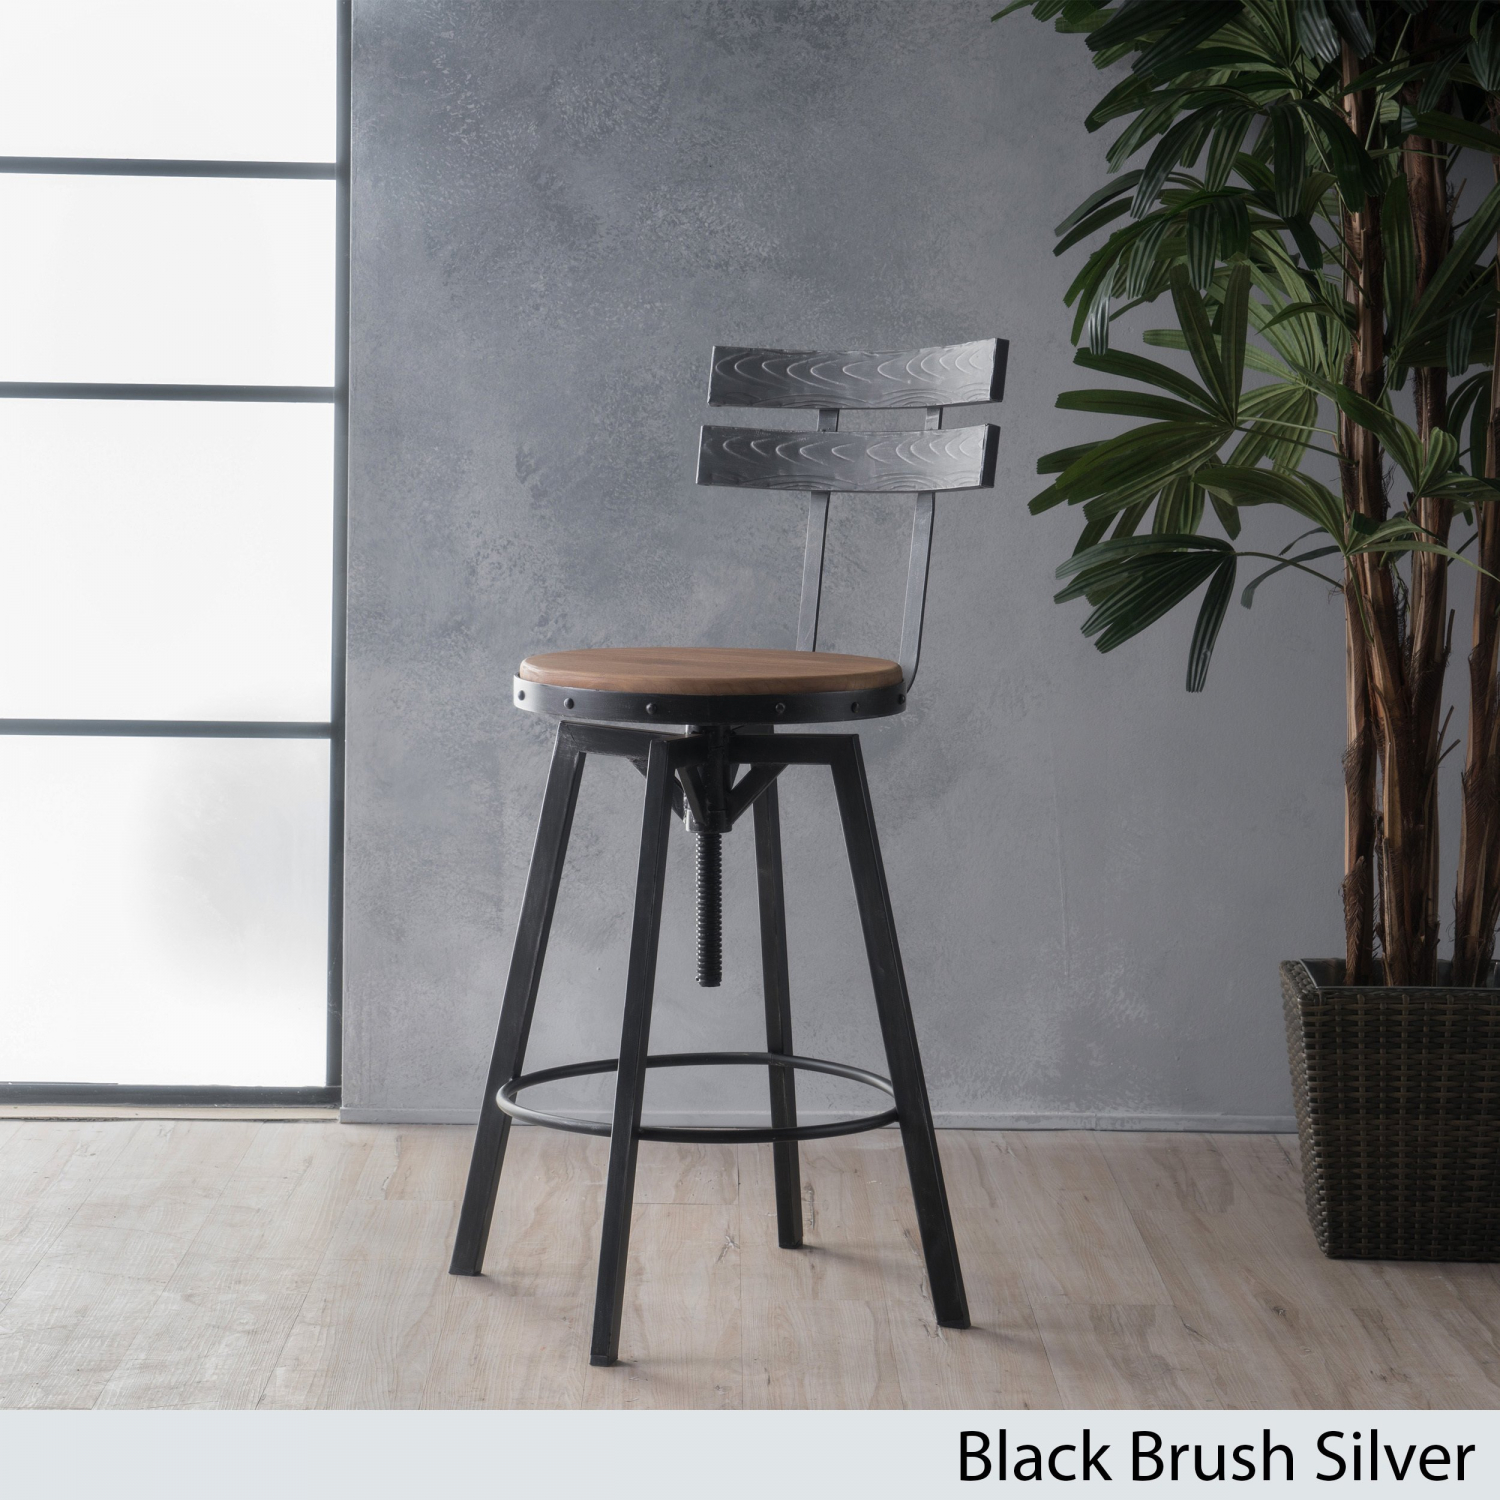 Details About Bar Stool Counter Height Adjustable Round Seat Swivel Chair Kitchen Dining Room